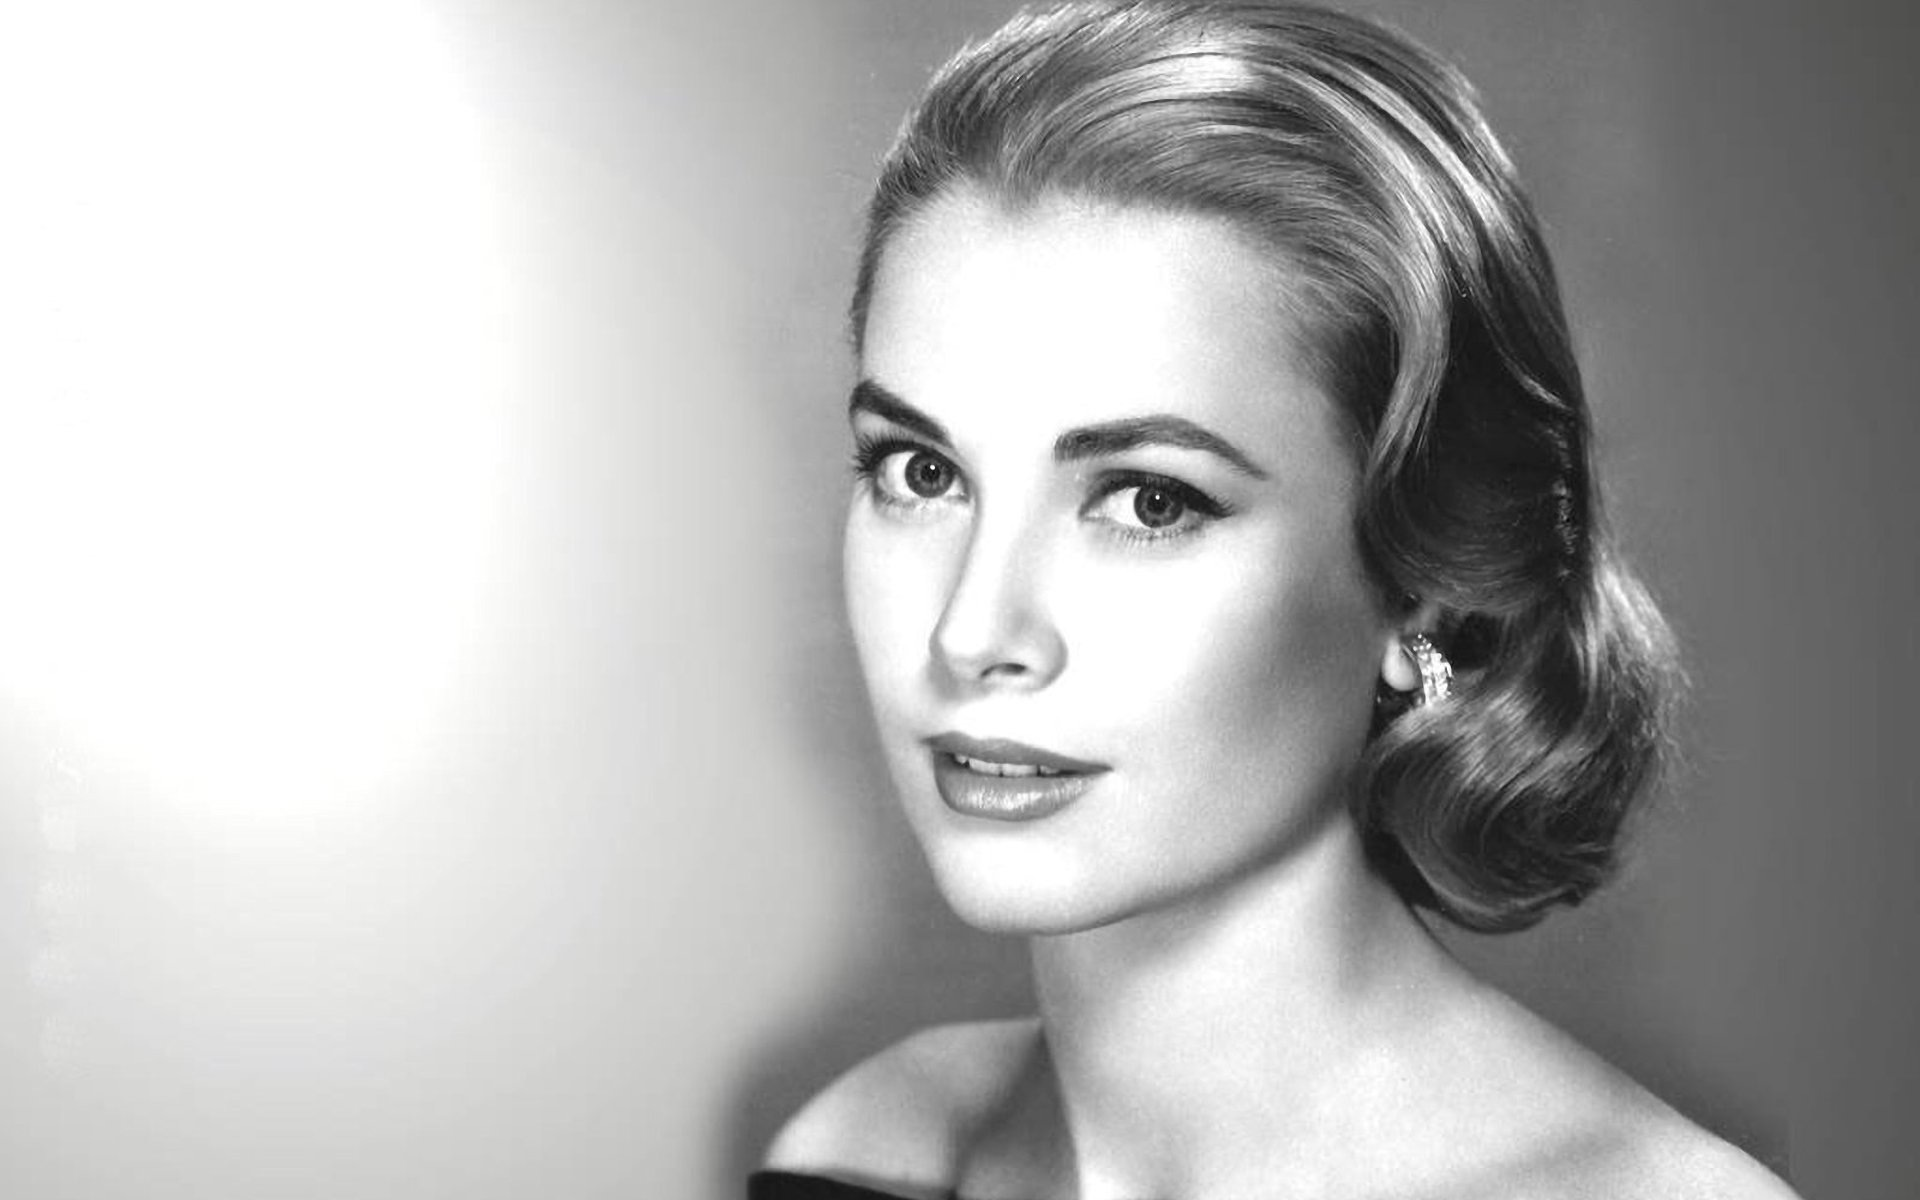 Grace-Kelly-High-Quality-Wallpapers.jpeg